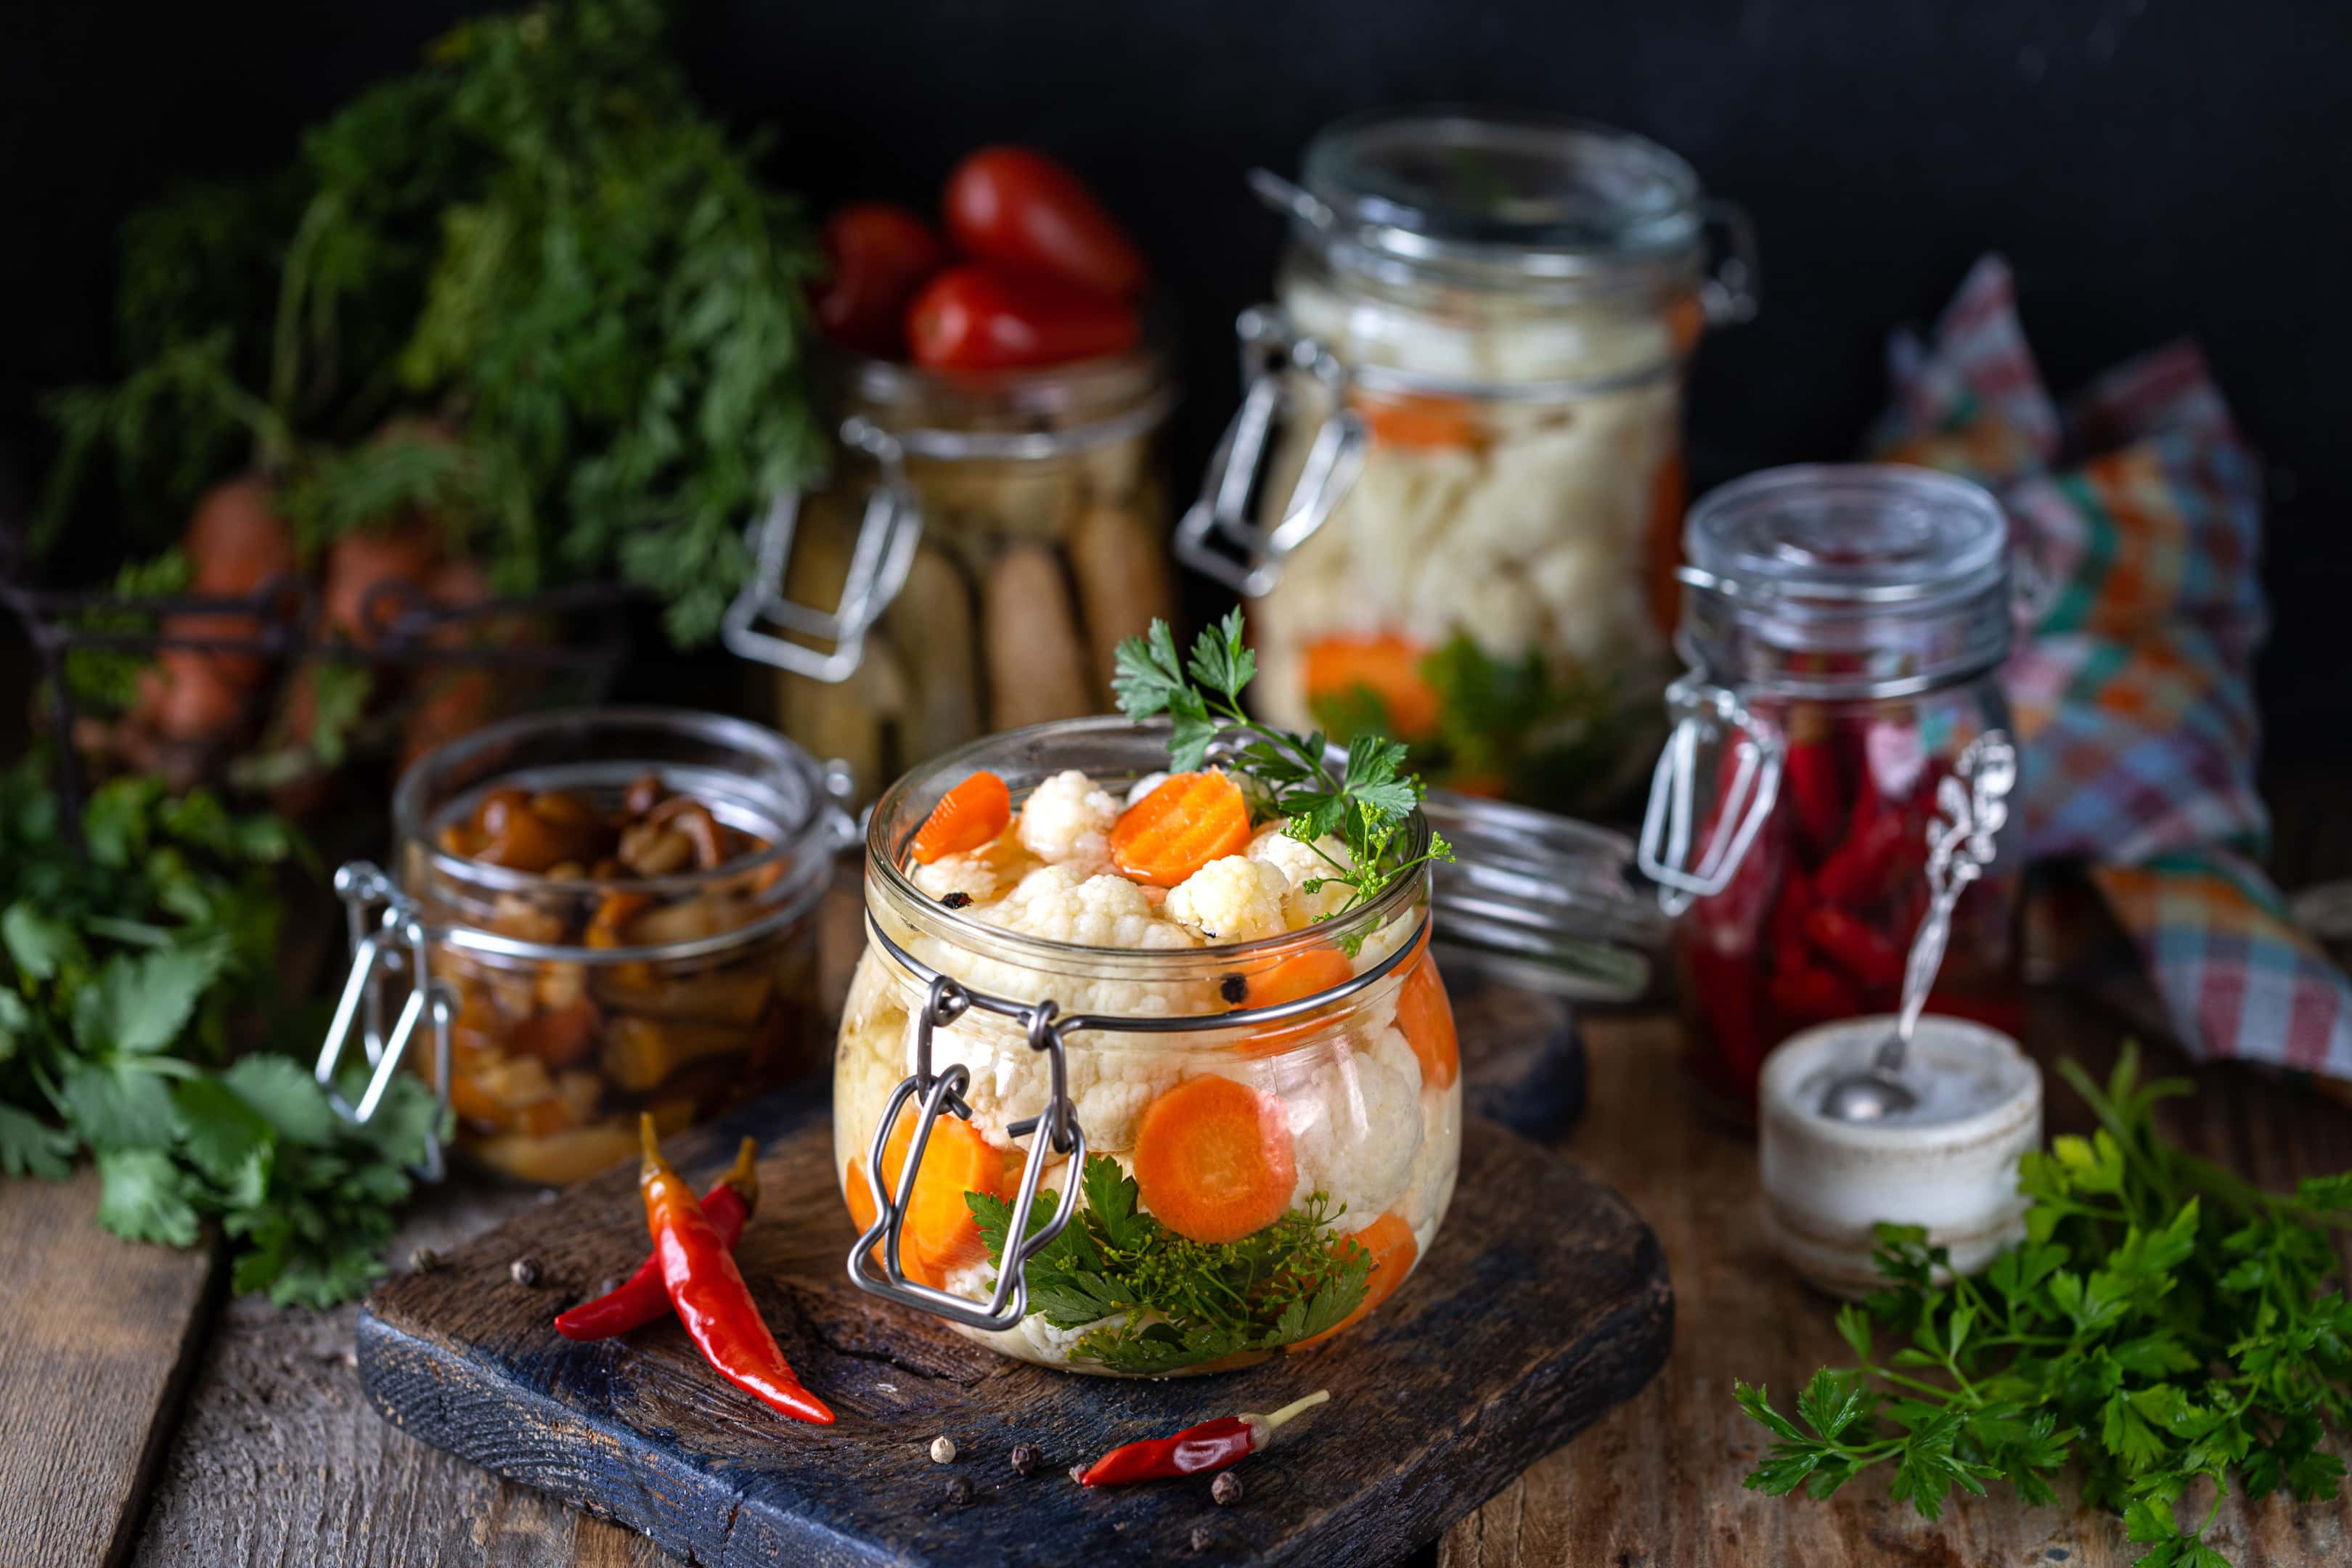 Fermented cauliflower with carrots in a glass jar on wooden table